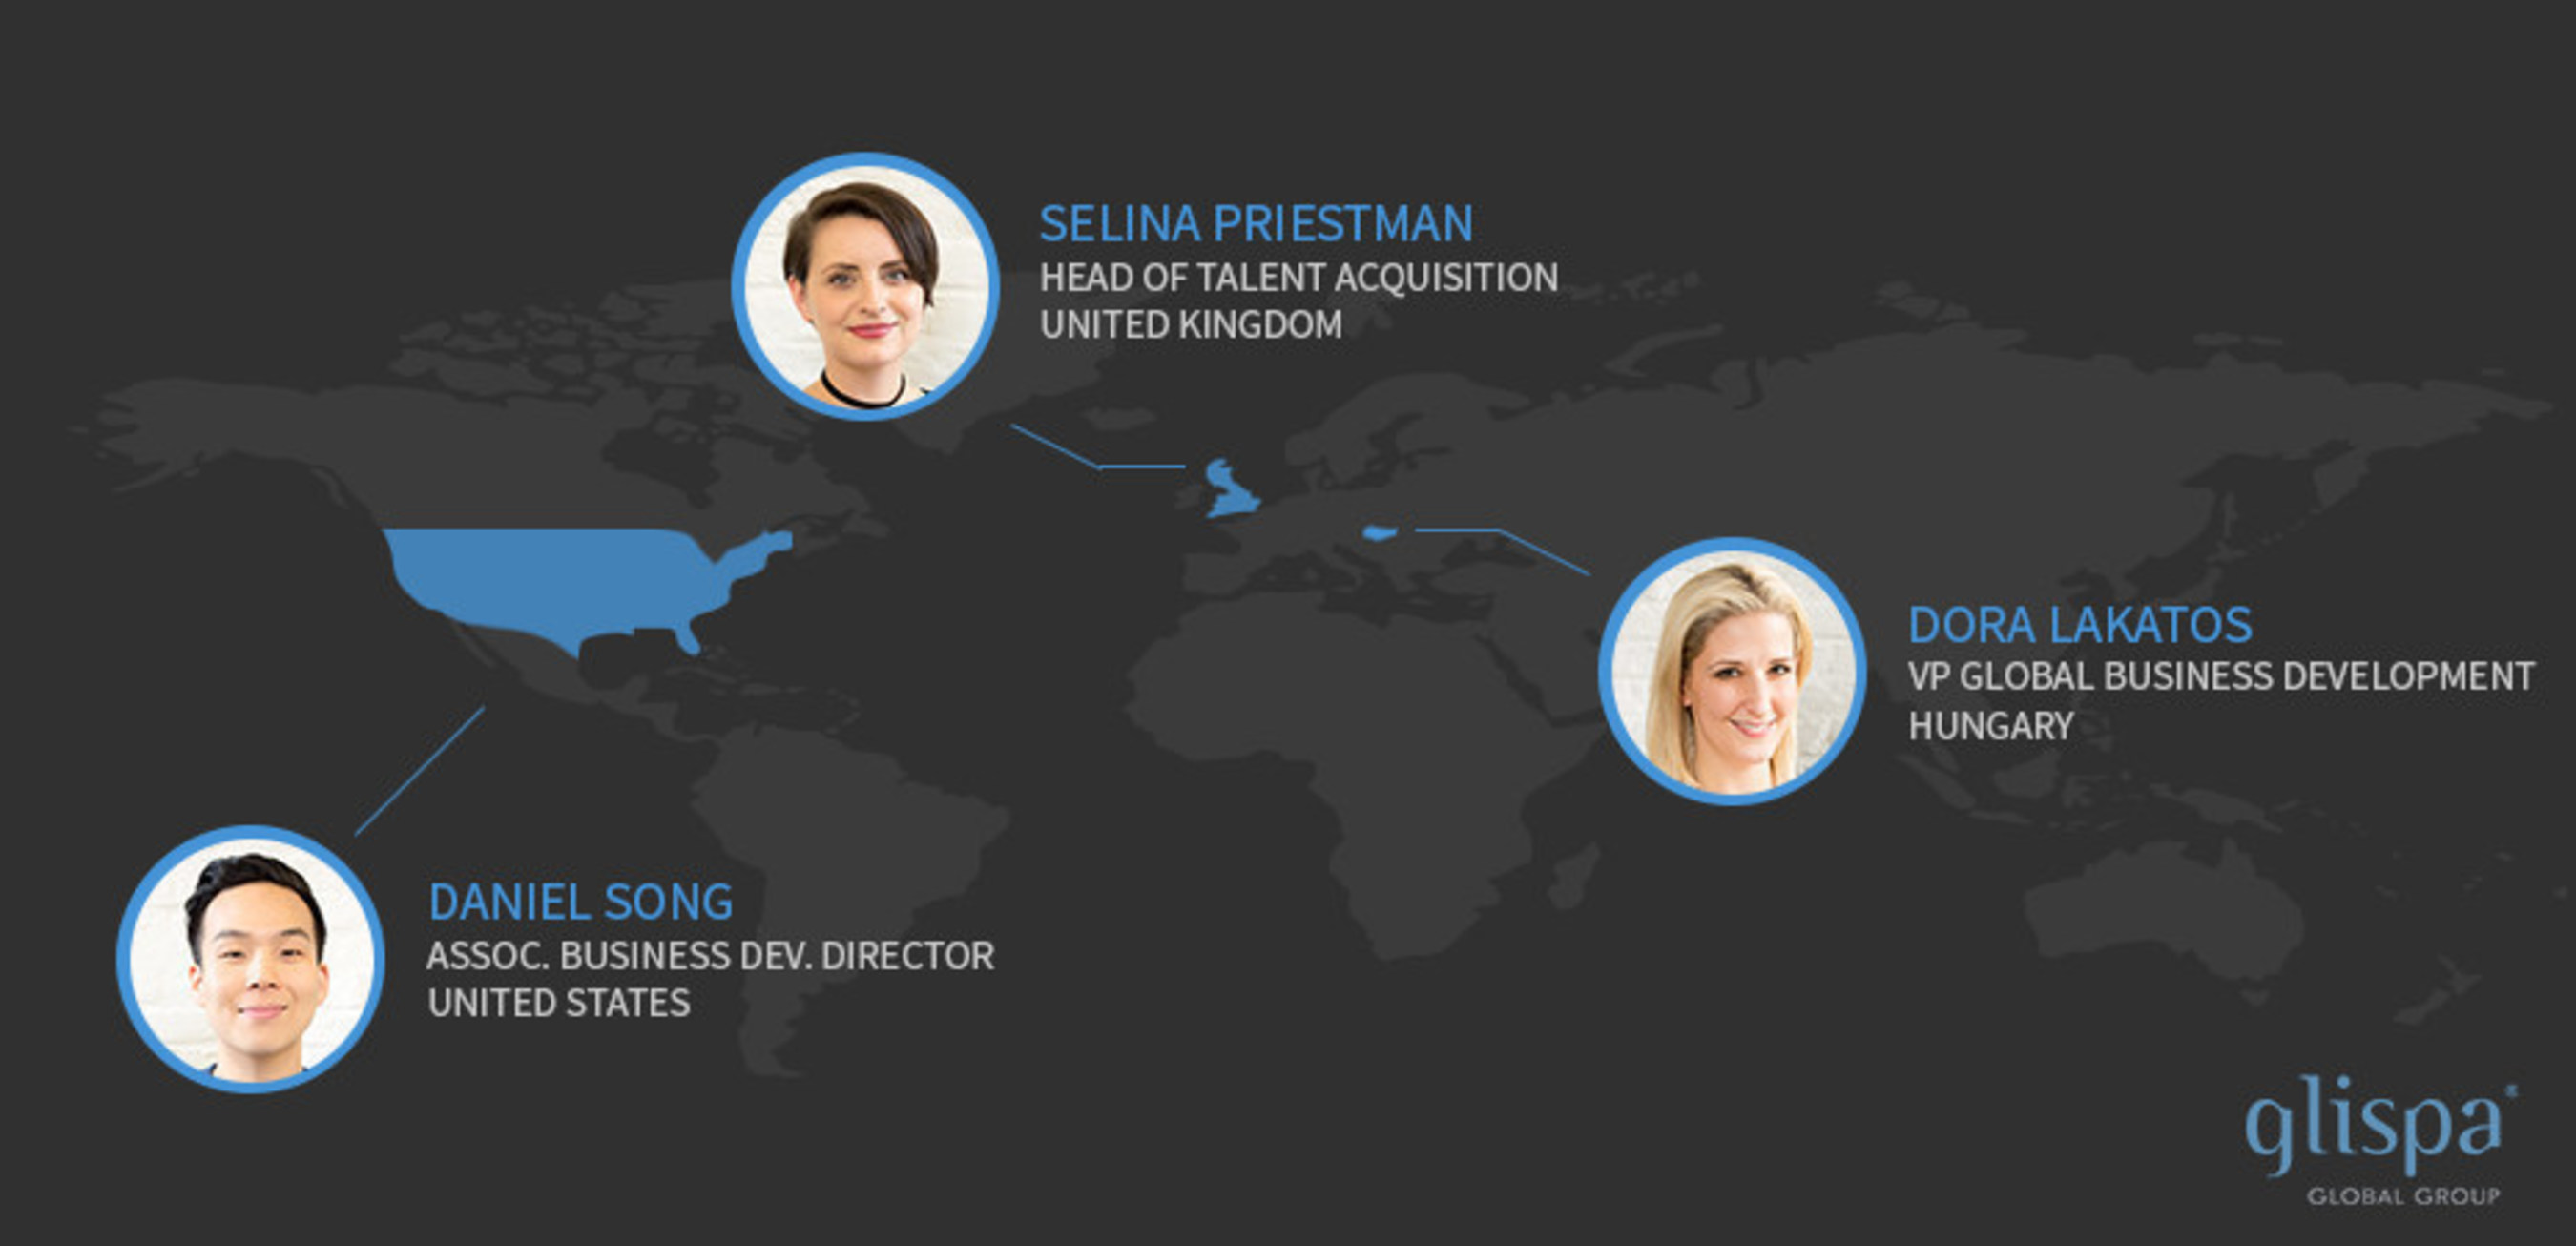 We are excited to welcome Dora Lakatos, Selina Priestman and Daniel Song to the glispa Team.